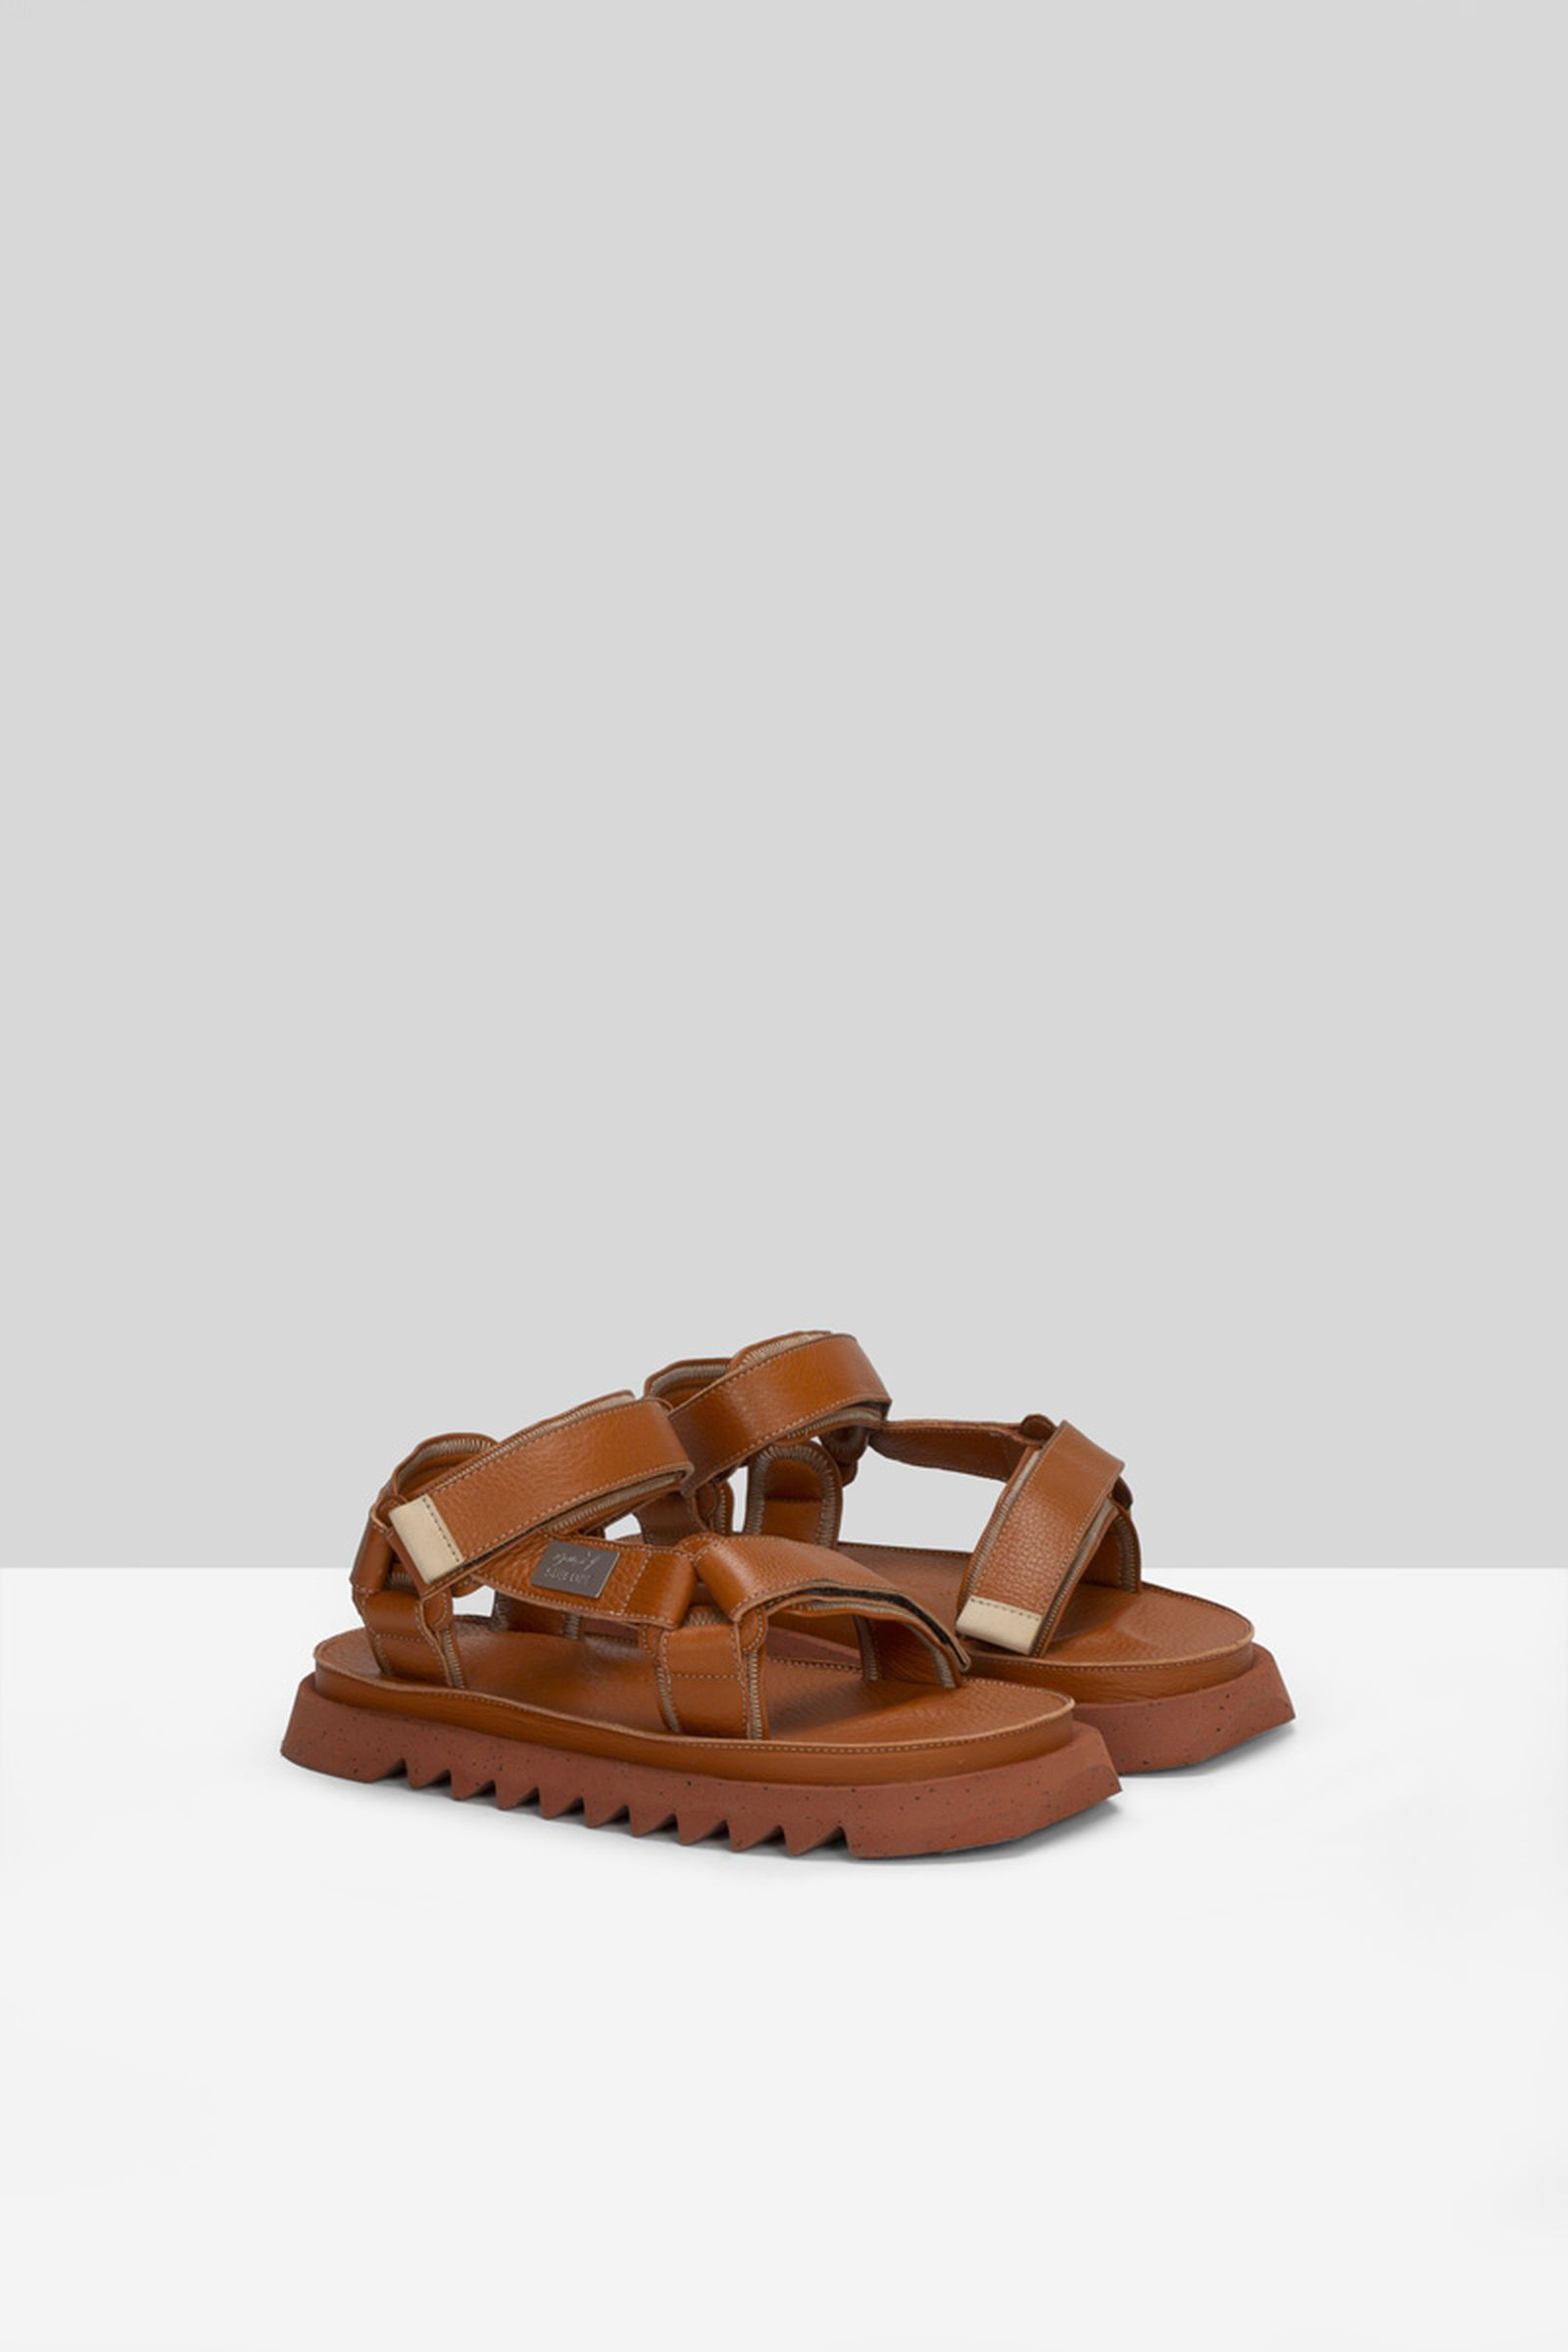 marsell-suicoke-ss21-collection-release-date-price-8